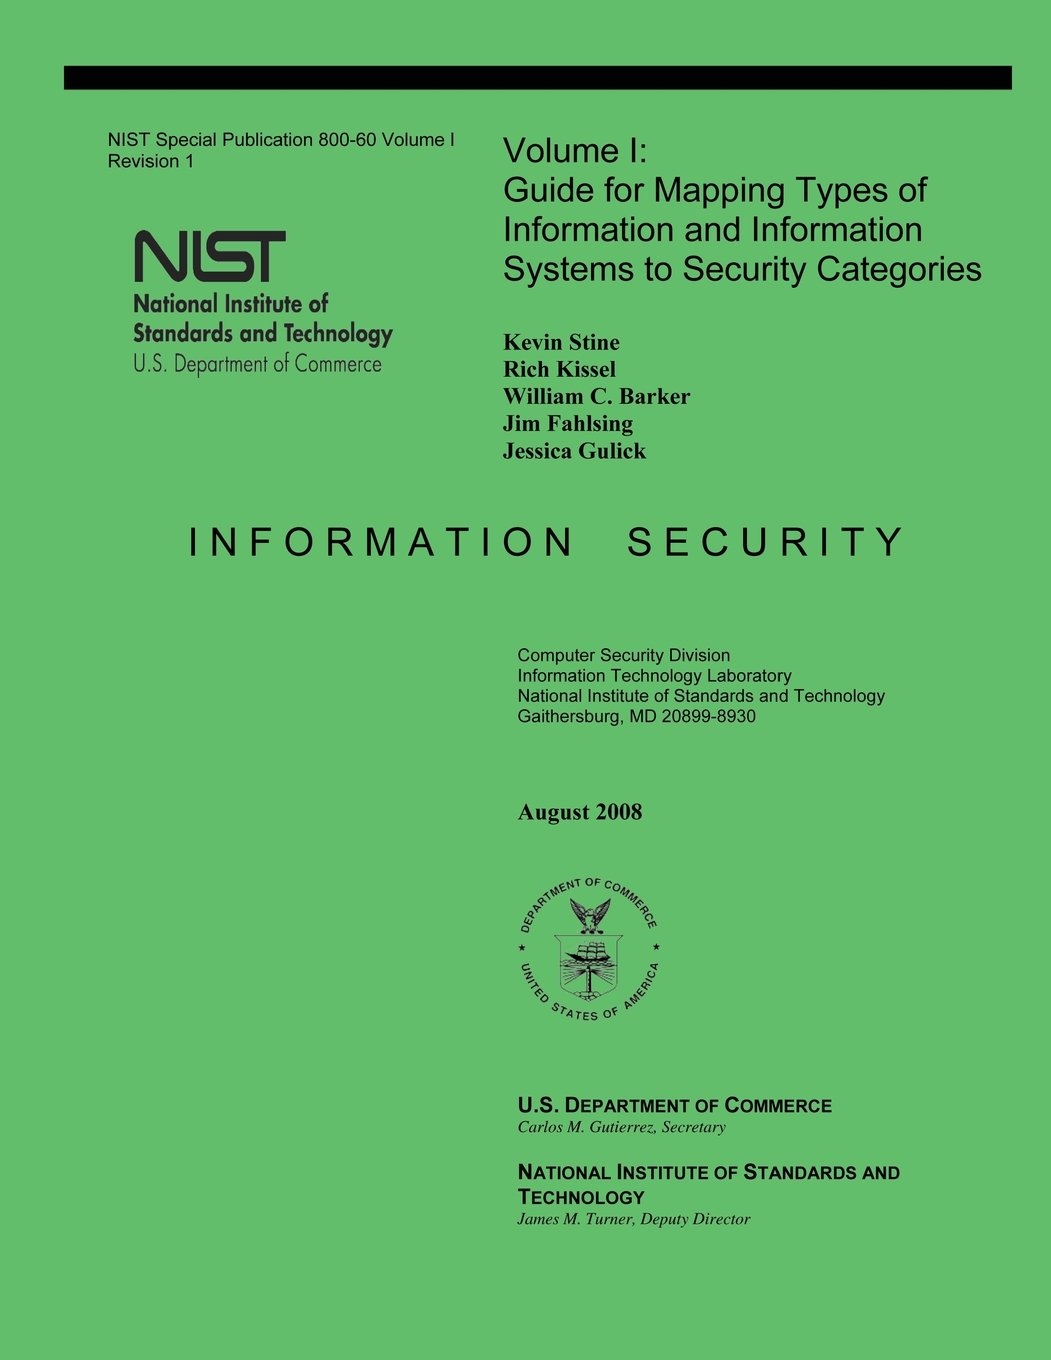 Download NIST Special Publication 800-60: Volume 1 Guide for Mapping Types of Information and Information Systems to Security Categories ebook